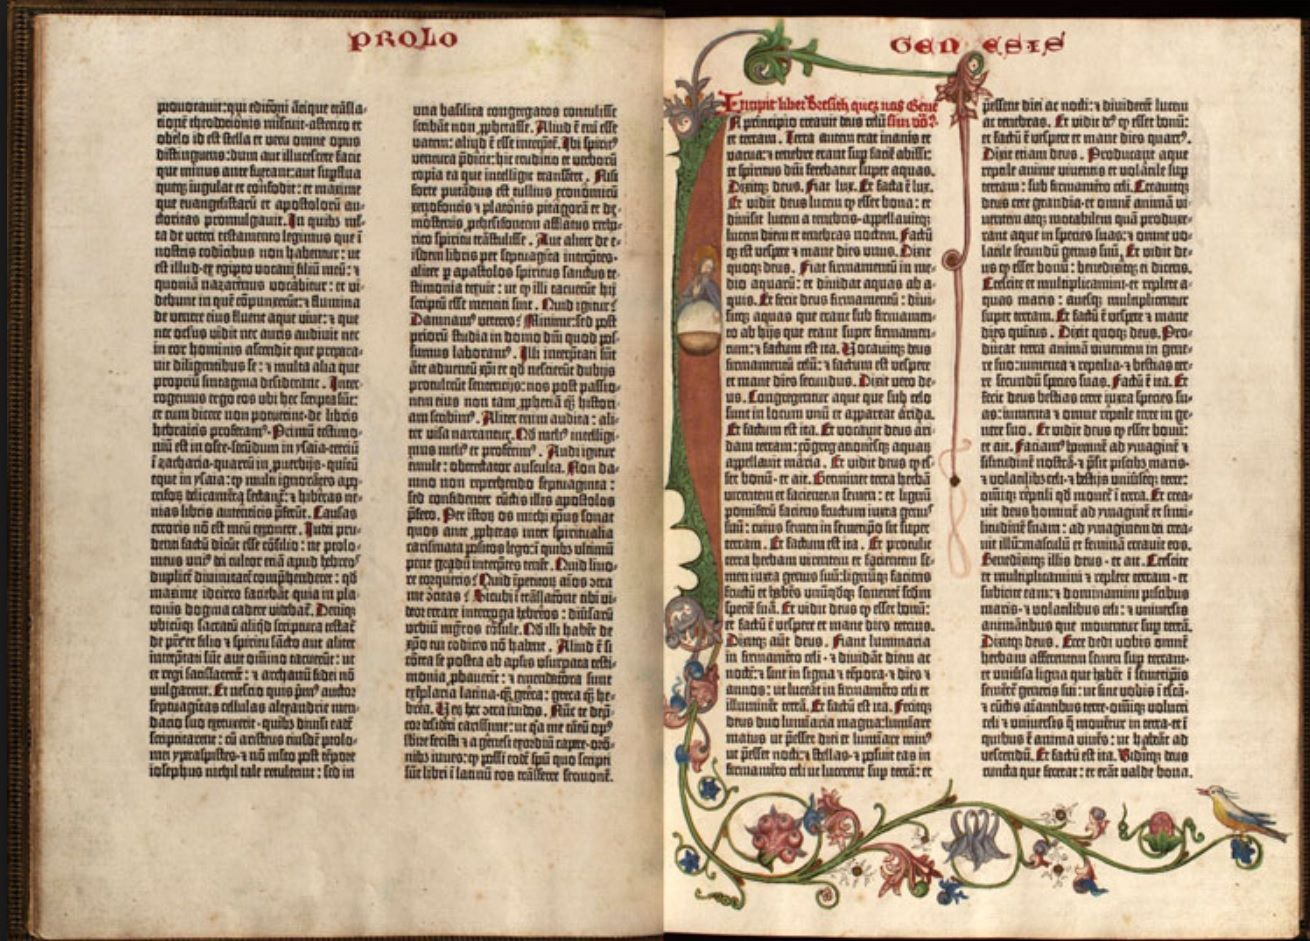 the gutenberg bible was printed on hemp paper in 1456